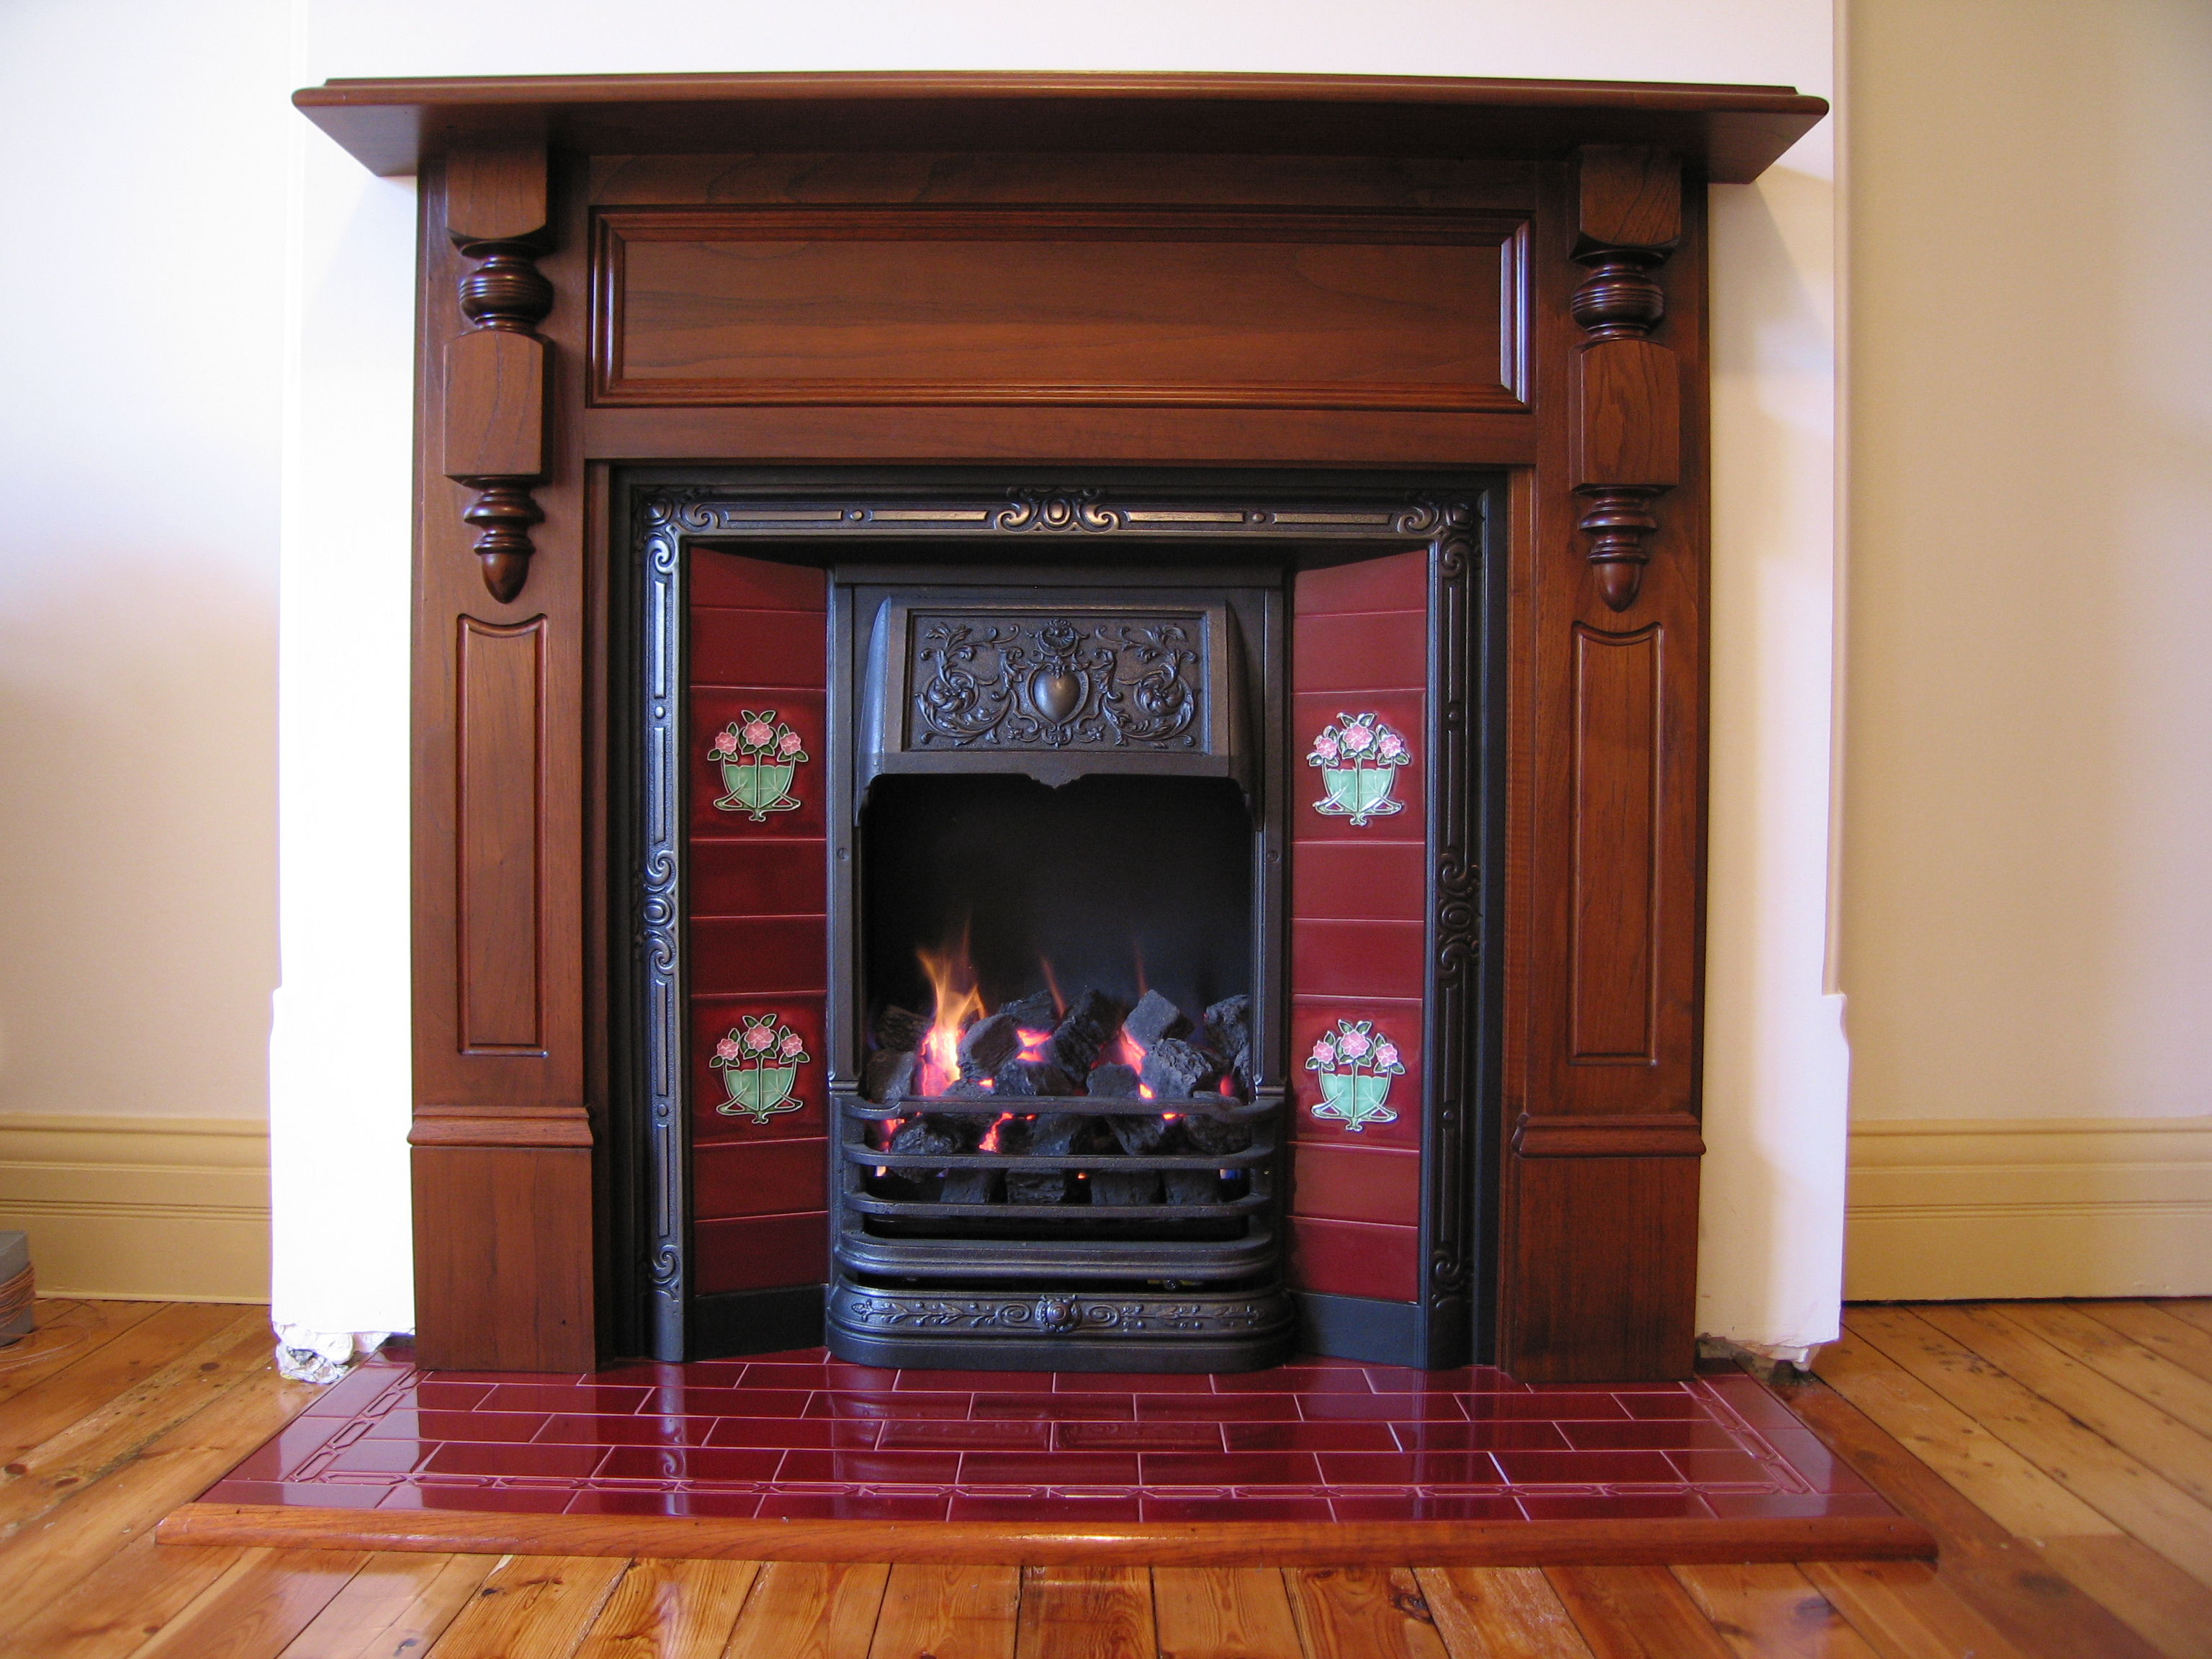 Bungalow Fireplace Mantel Federation Style Fireplace | Chippendalerestorationsgasfires